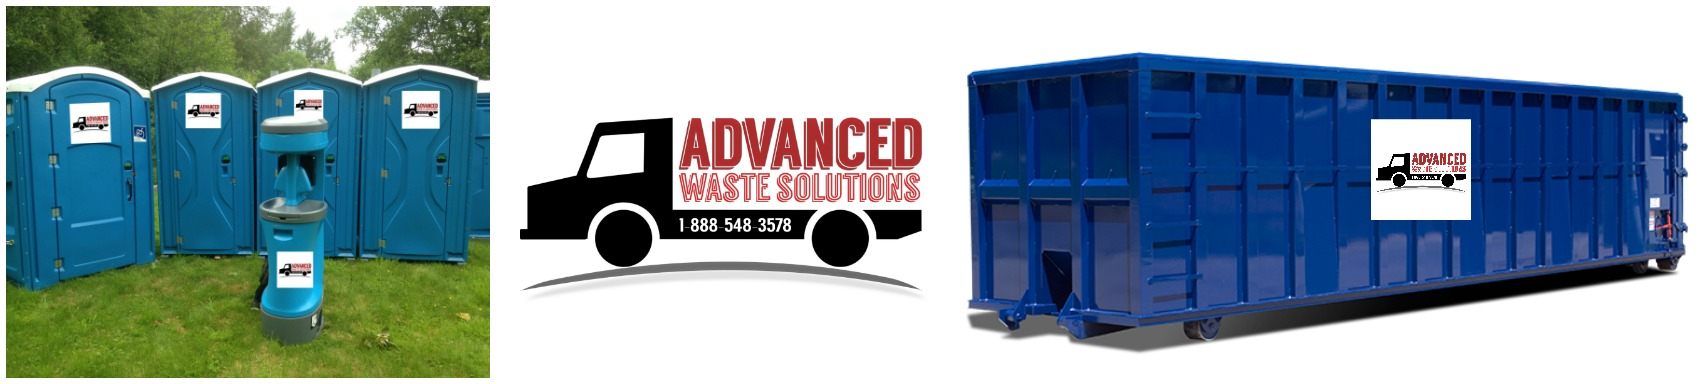 Advance Waste Solutions image 6